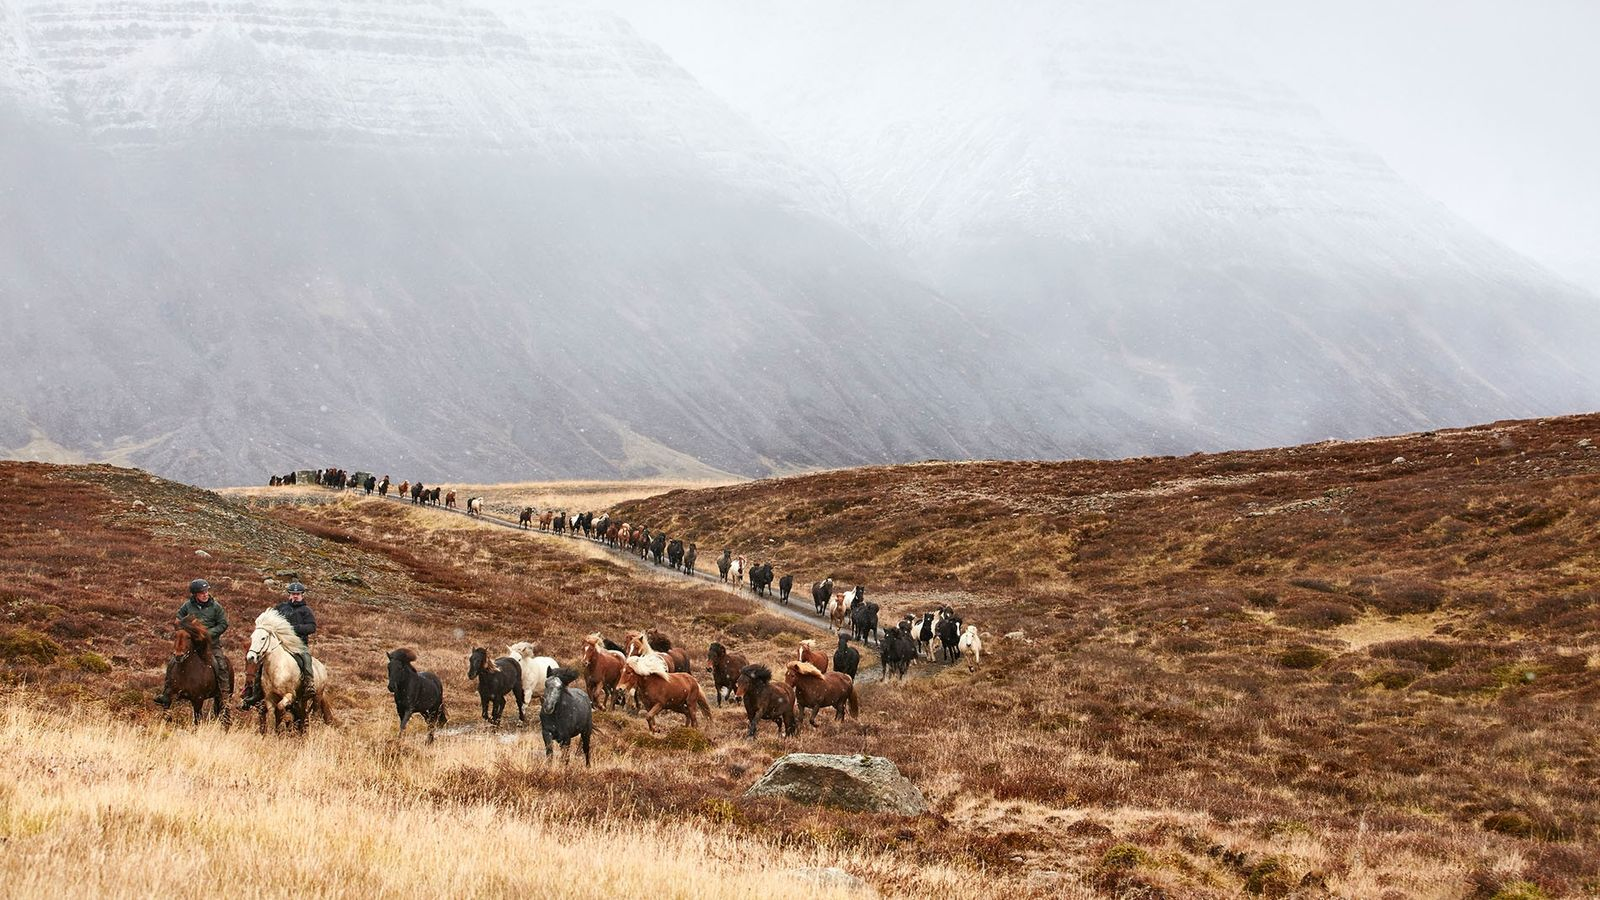 The annual Laufskálarétt horse round up in Iceland's Kolbeinsdalur Valley.